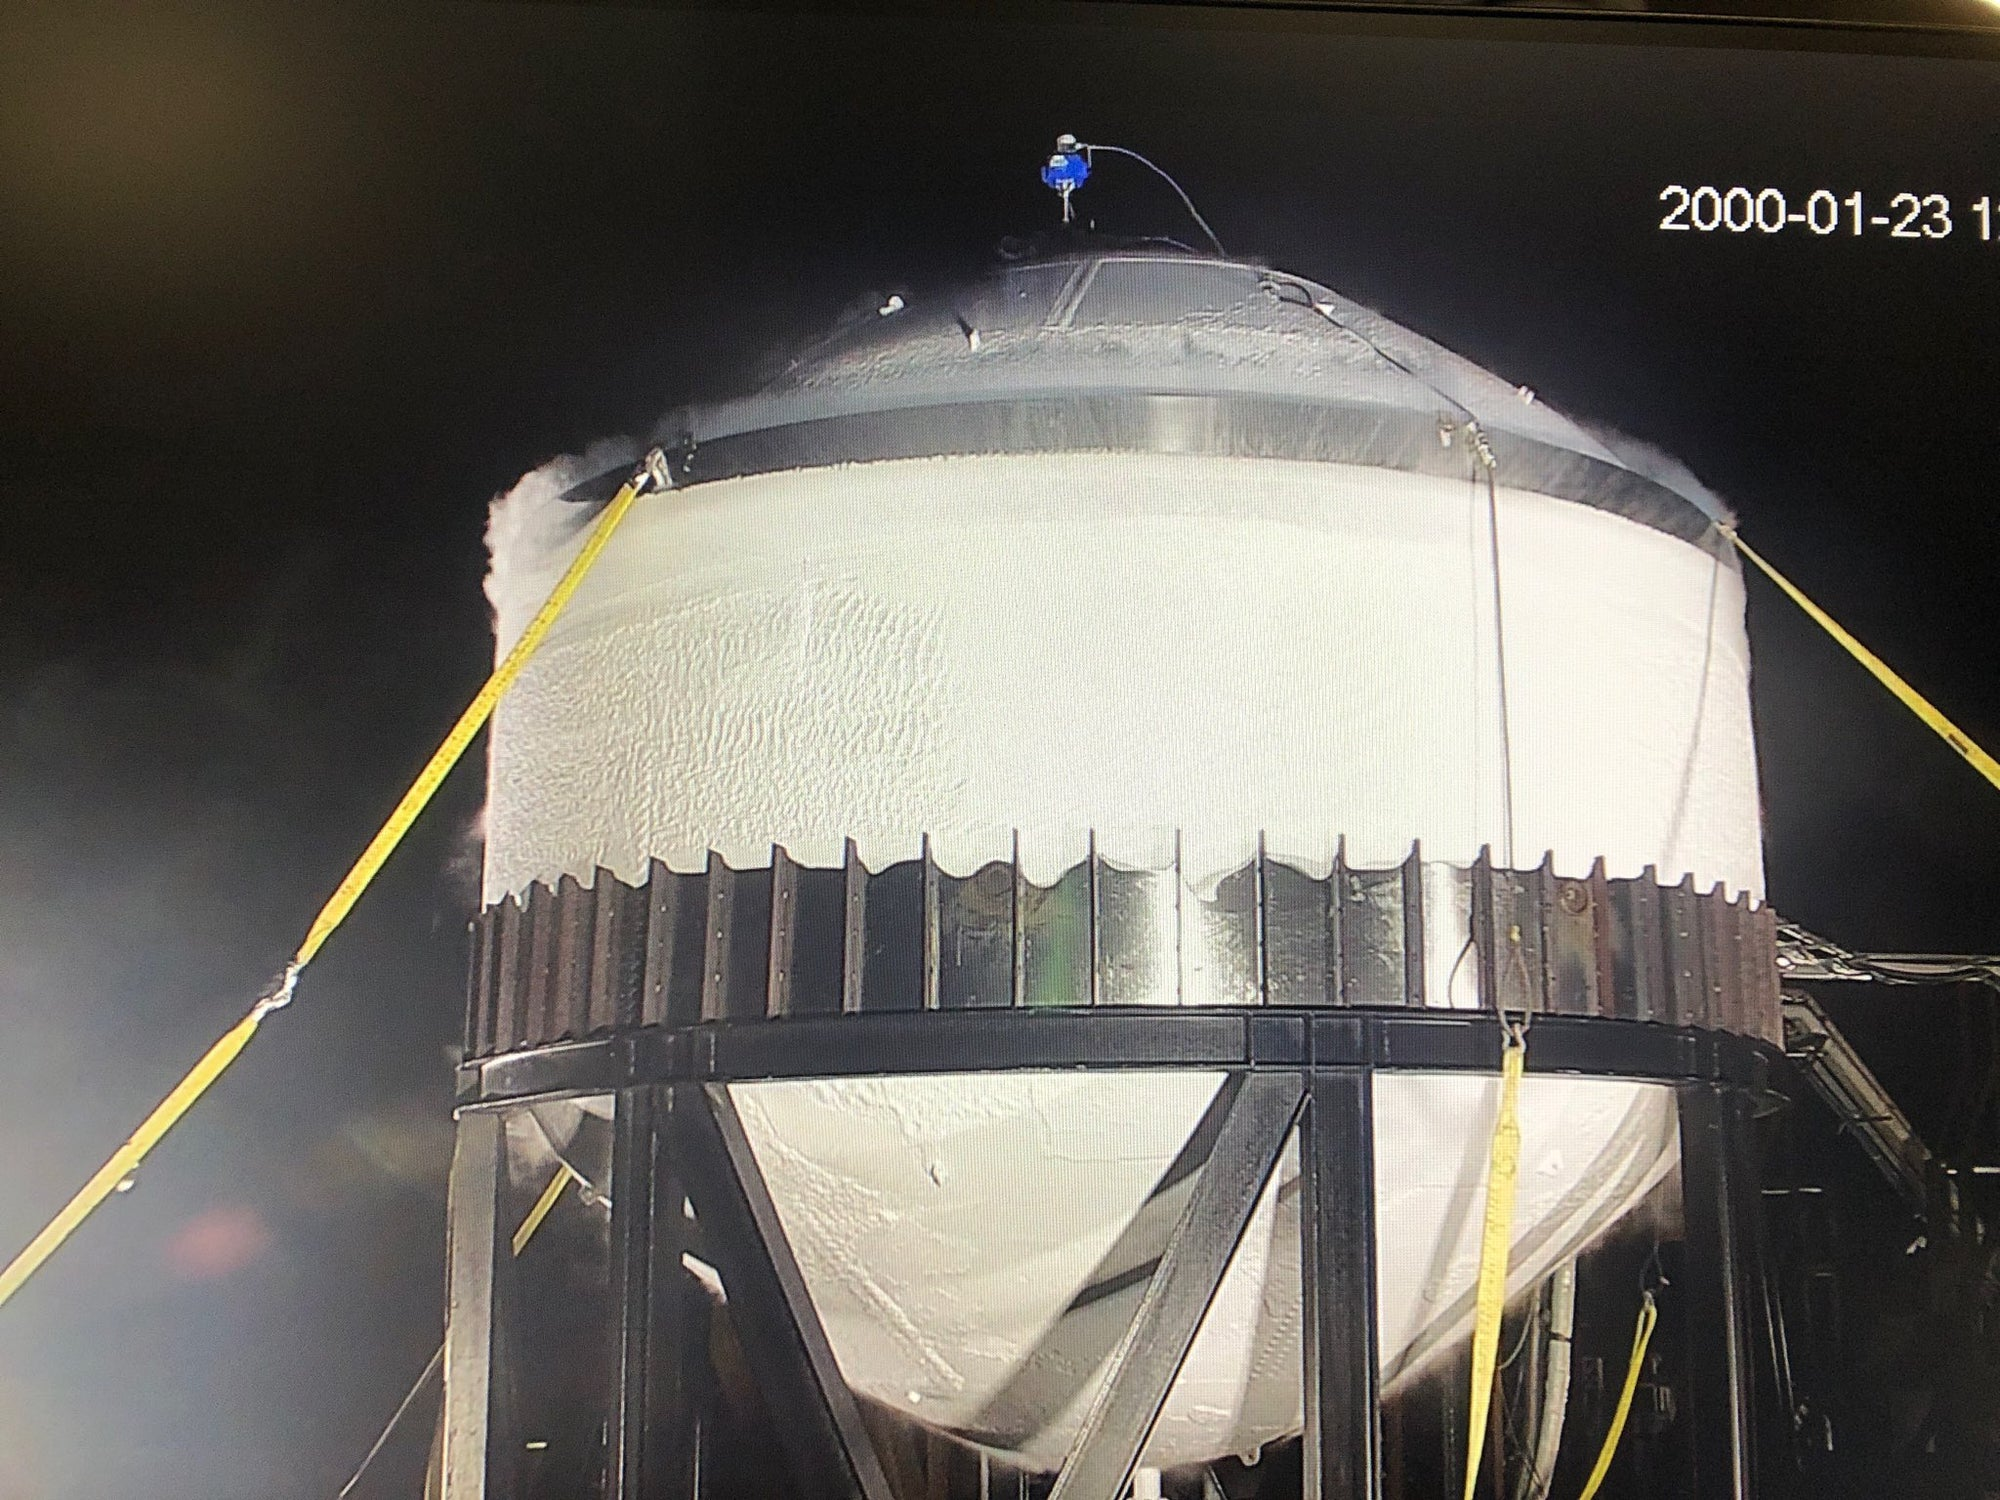 SpaceX conducts 'destructive' cryogenic strength test on a Starship dome tank at Boca Chica [VIDEO]